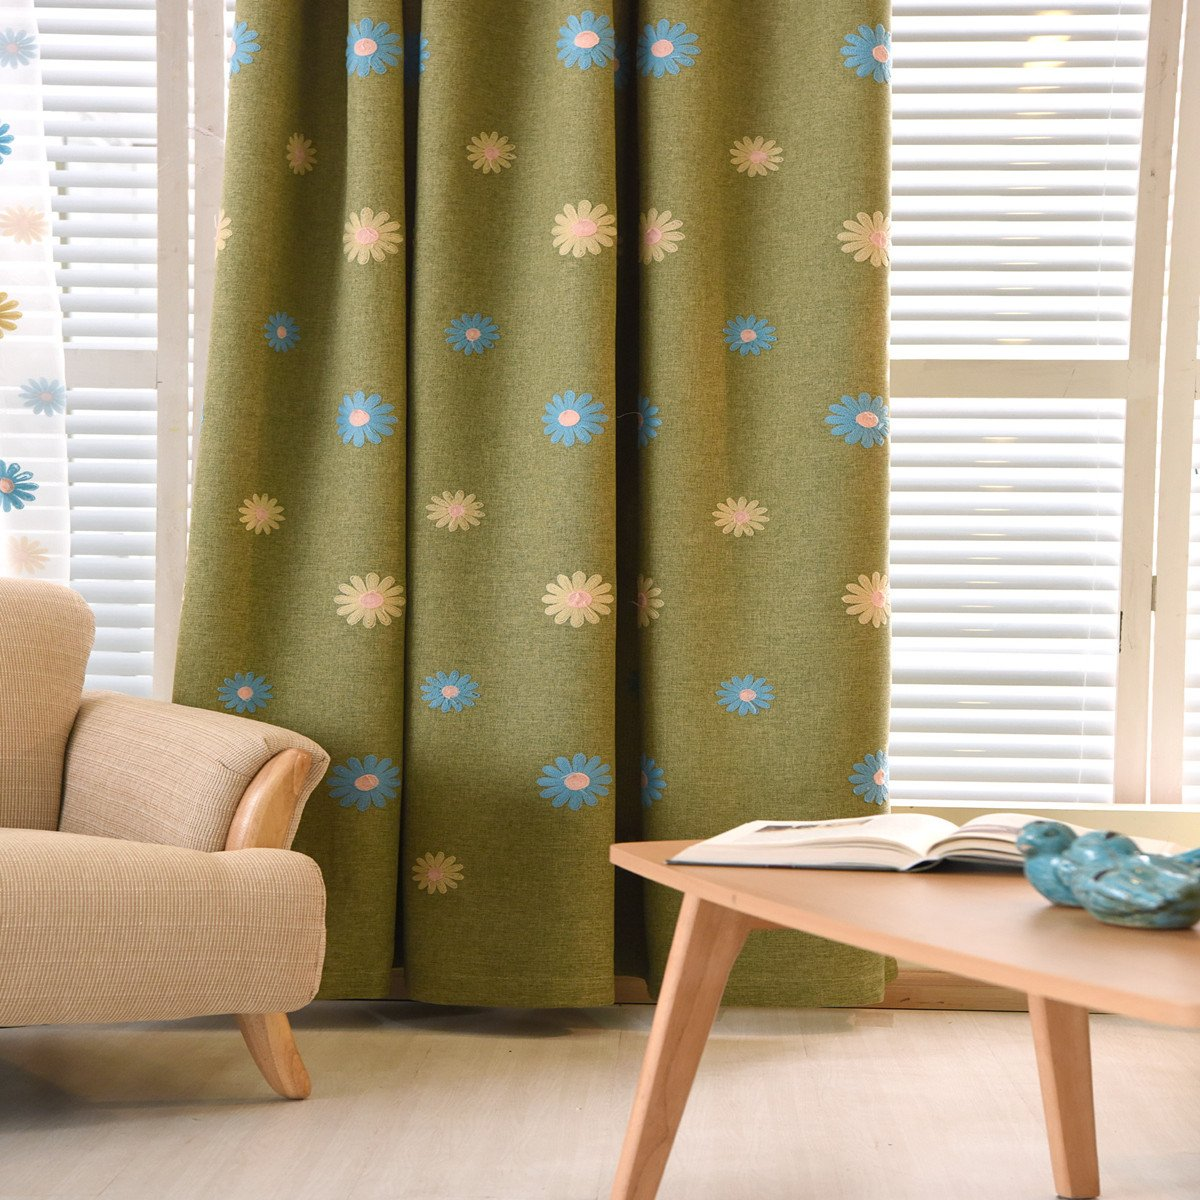 1 Pair Sunflower Style Room Darkening Curtains for Kids Room (39 by 84 X2, Blue) MYRU